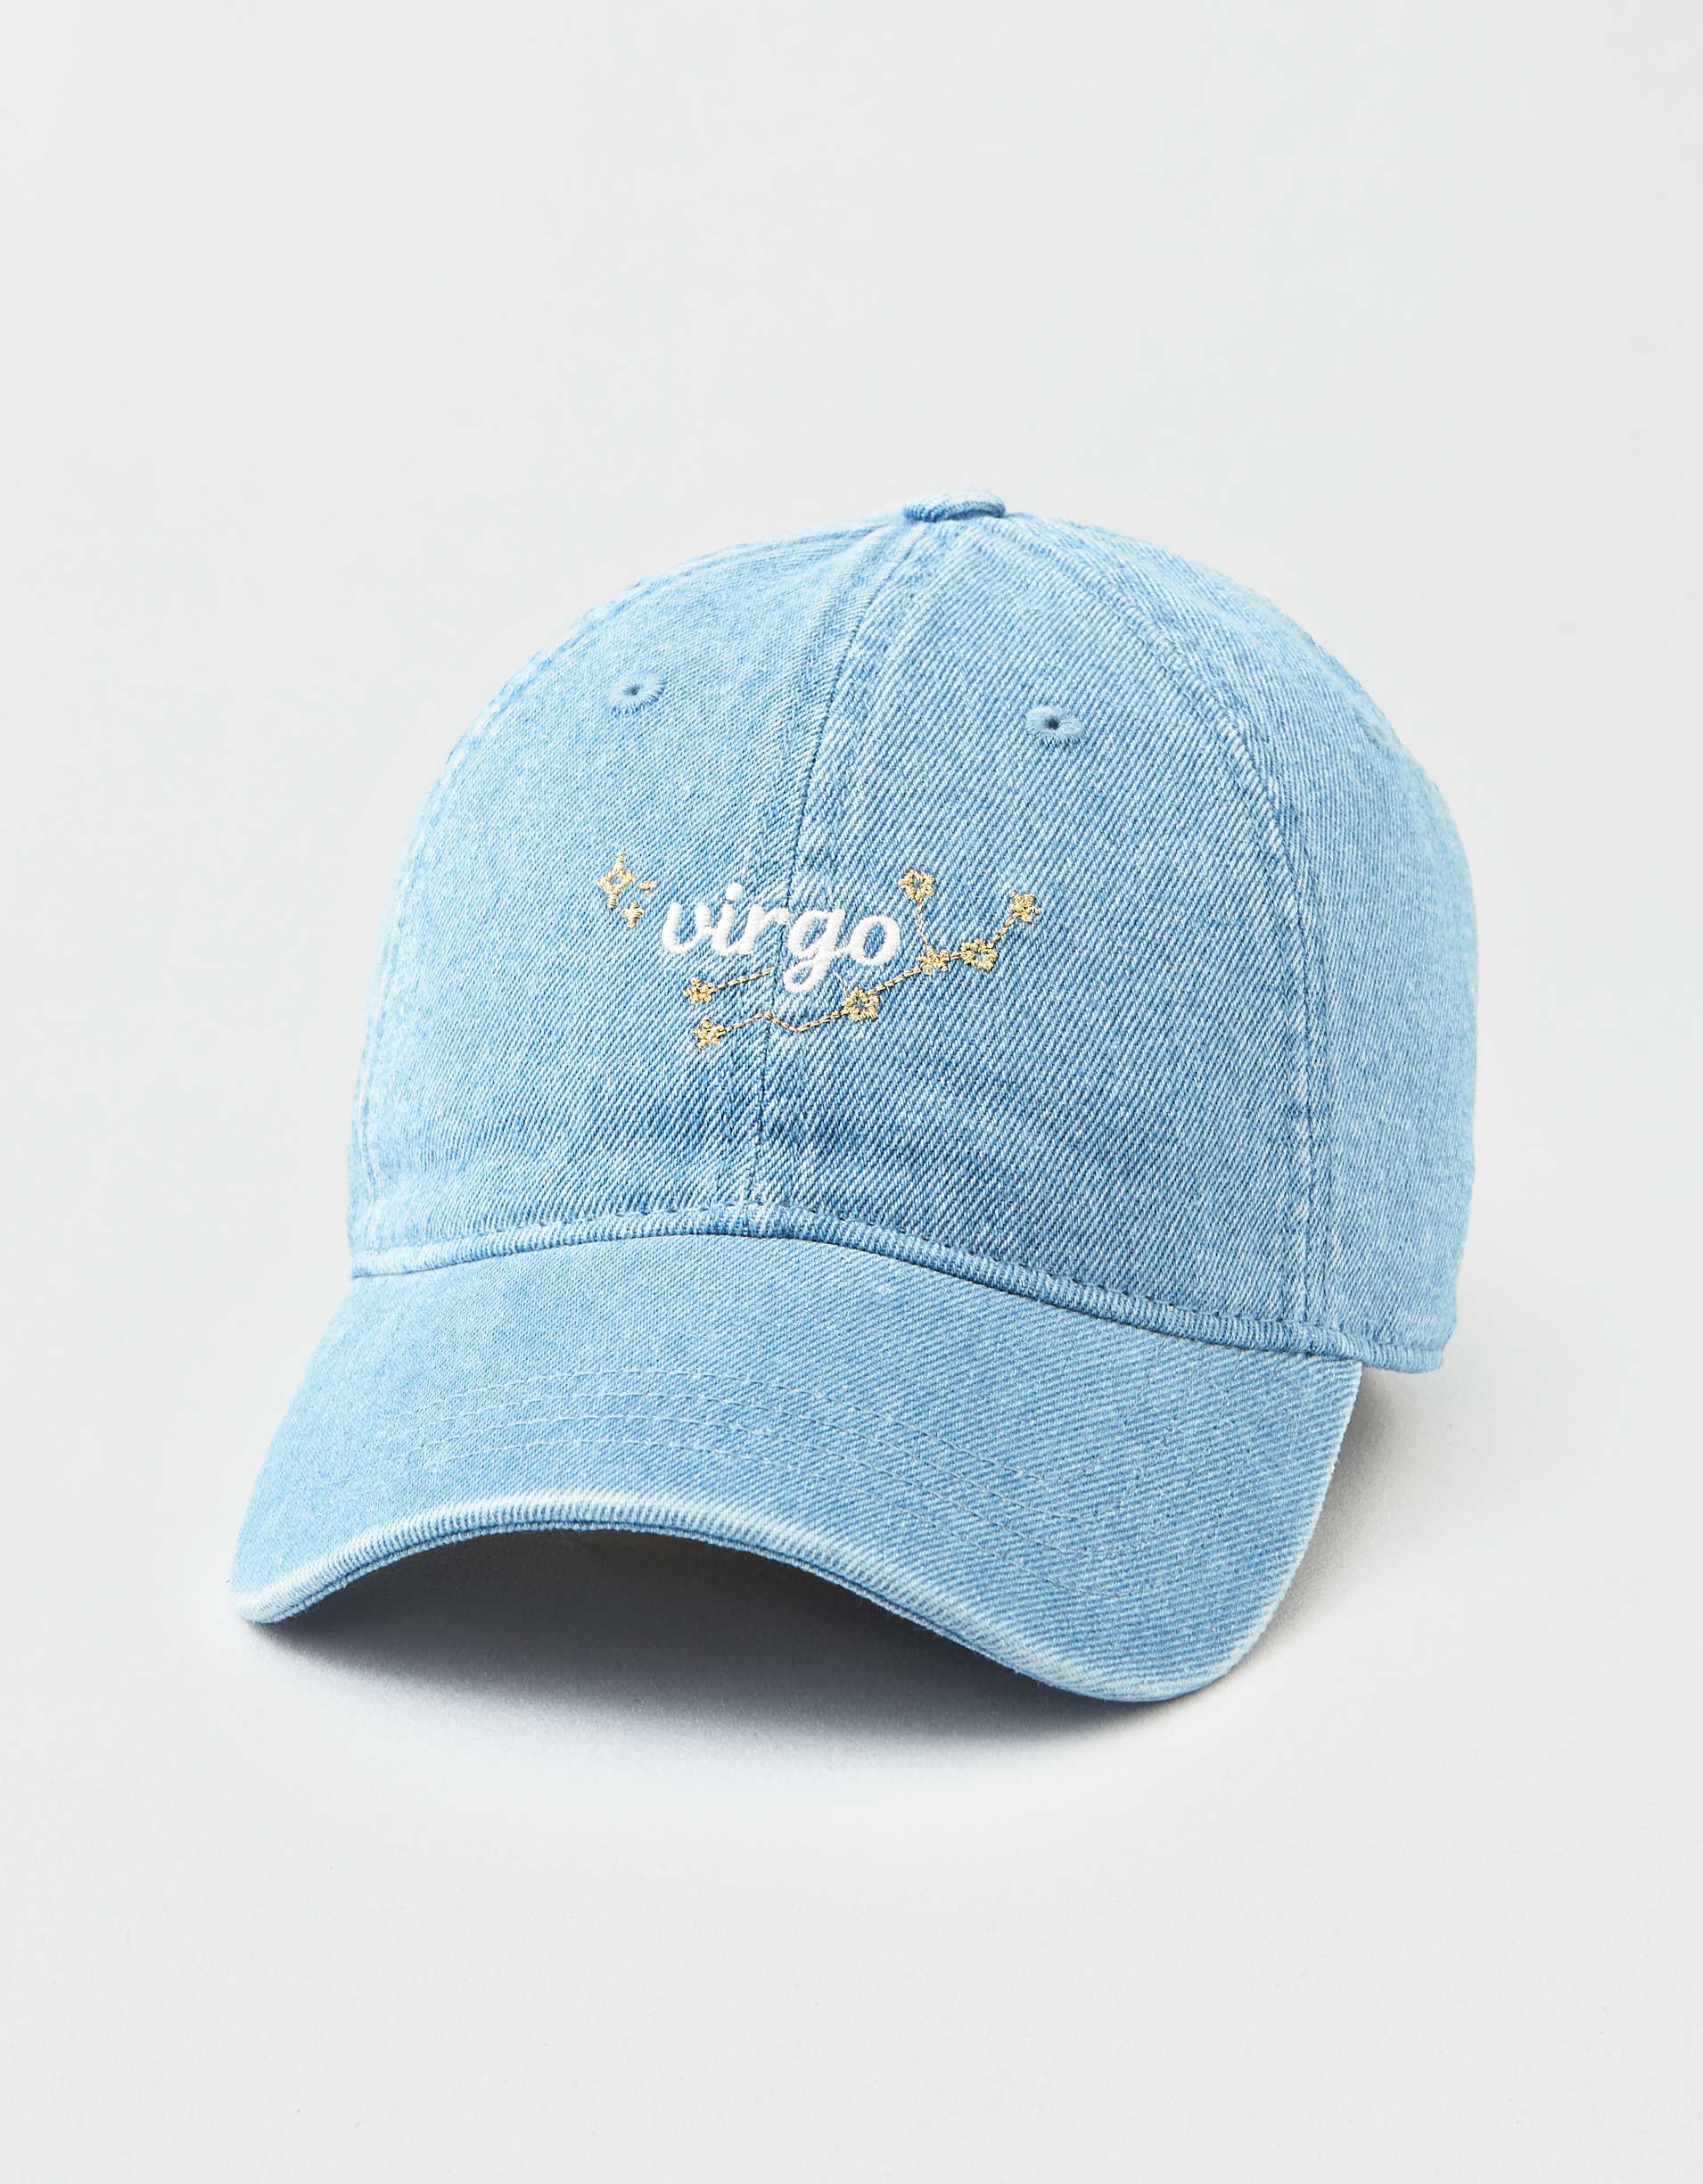 A denim baseball cap with 'virgo' written in white cursive font and the virgo constellation behind the text